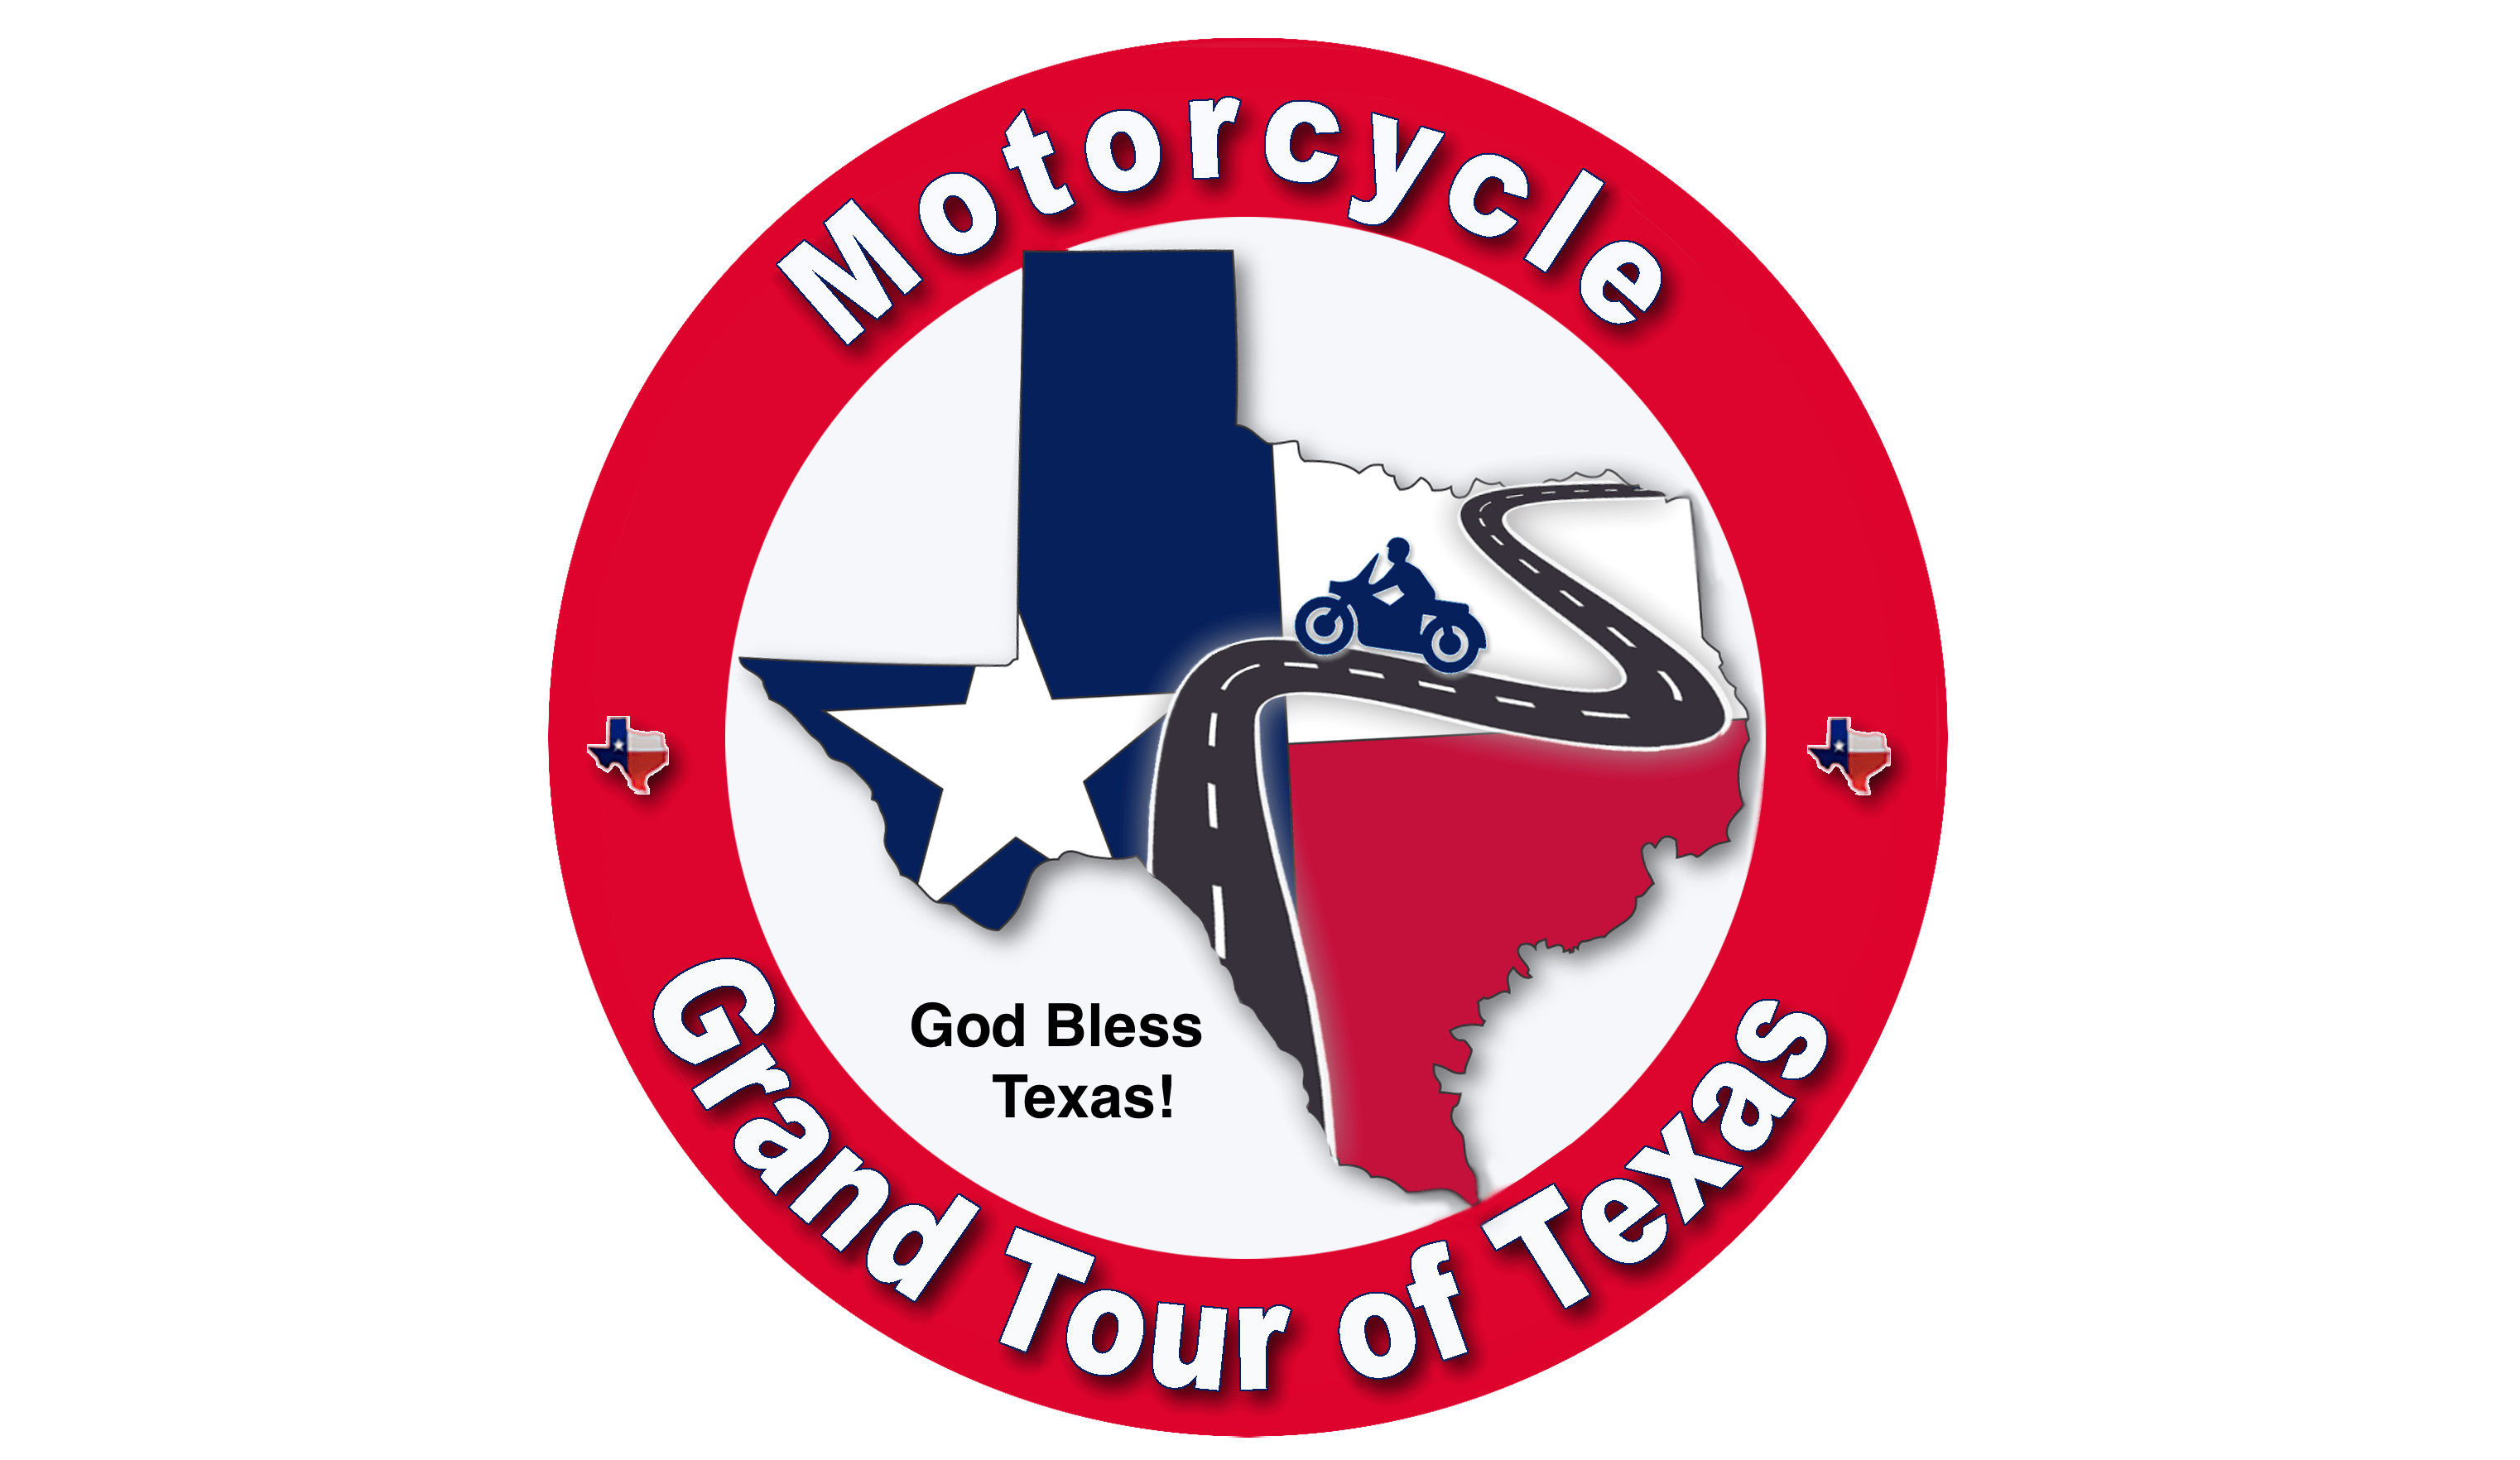 https://i1.wp.com/motorcyclegrandtouroftexas.com/wp-content/uploads/2019/11/cropped-motorcycle-grand-tour-of-texas-logo.png?fit=3044%2C1764&ssl=1